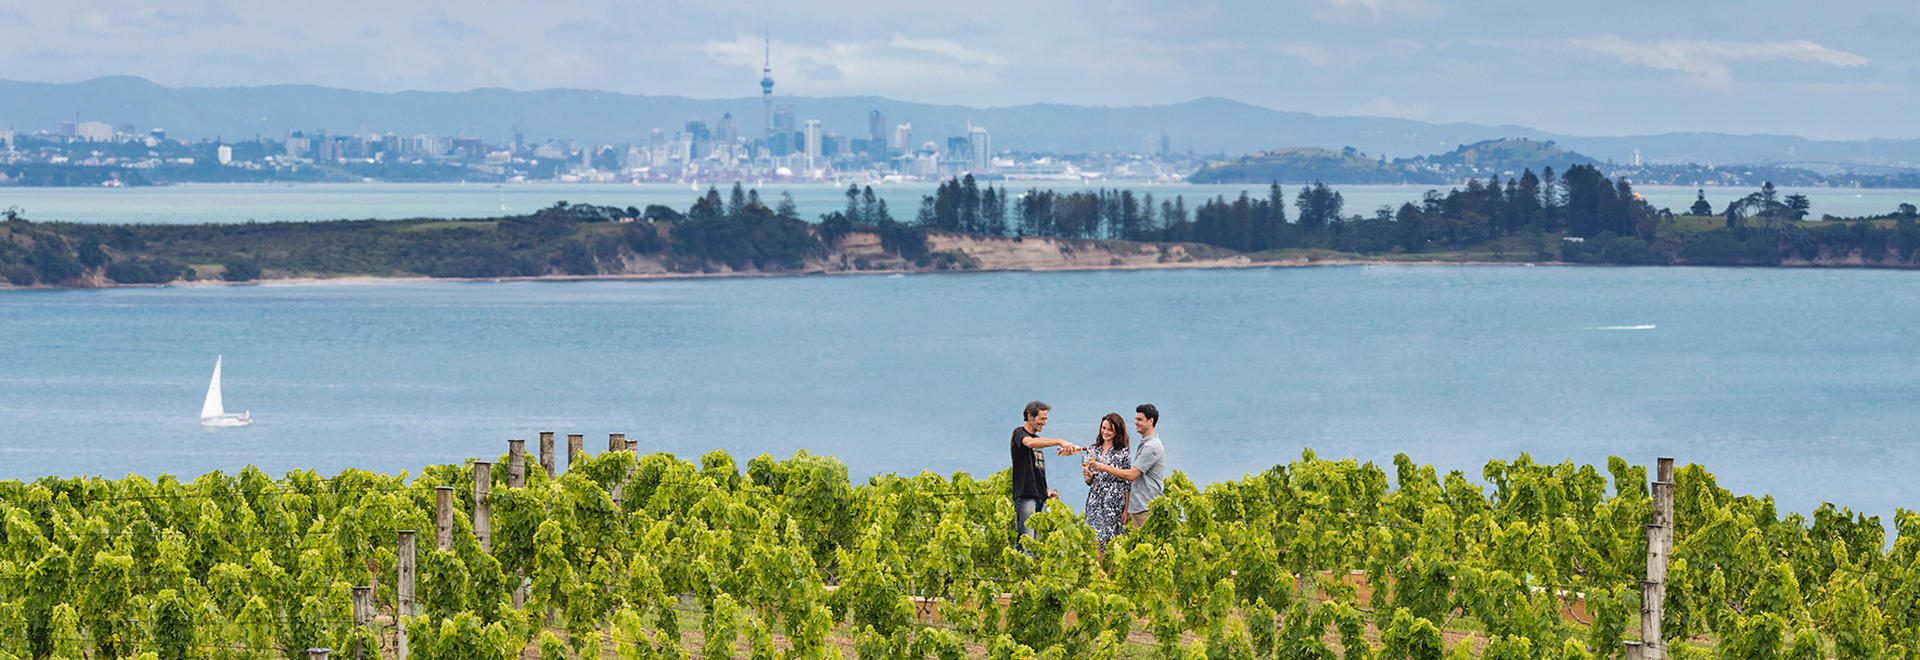 A couple enjoys a wine tasting in a vineyard on Waiheke Islands with views of Auckland in the background